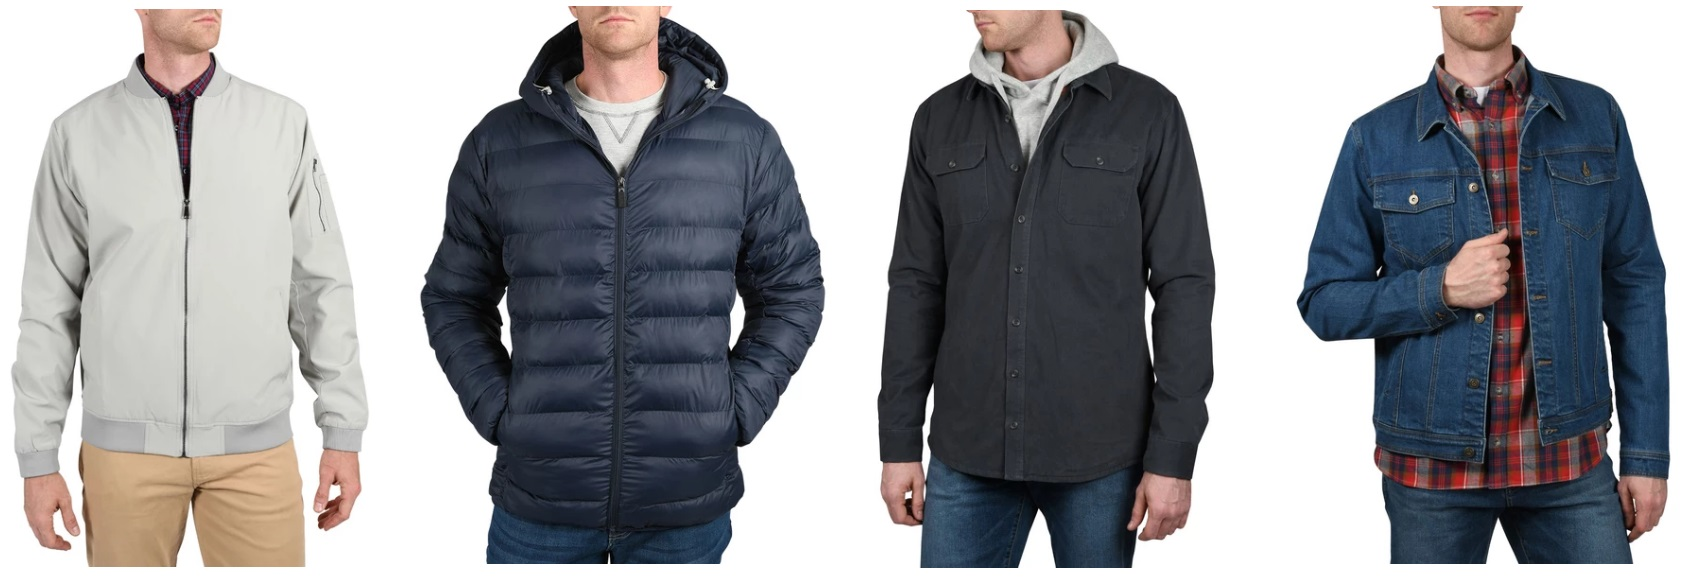 American Tall Jackets for Tall Men